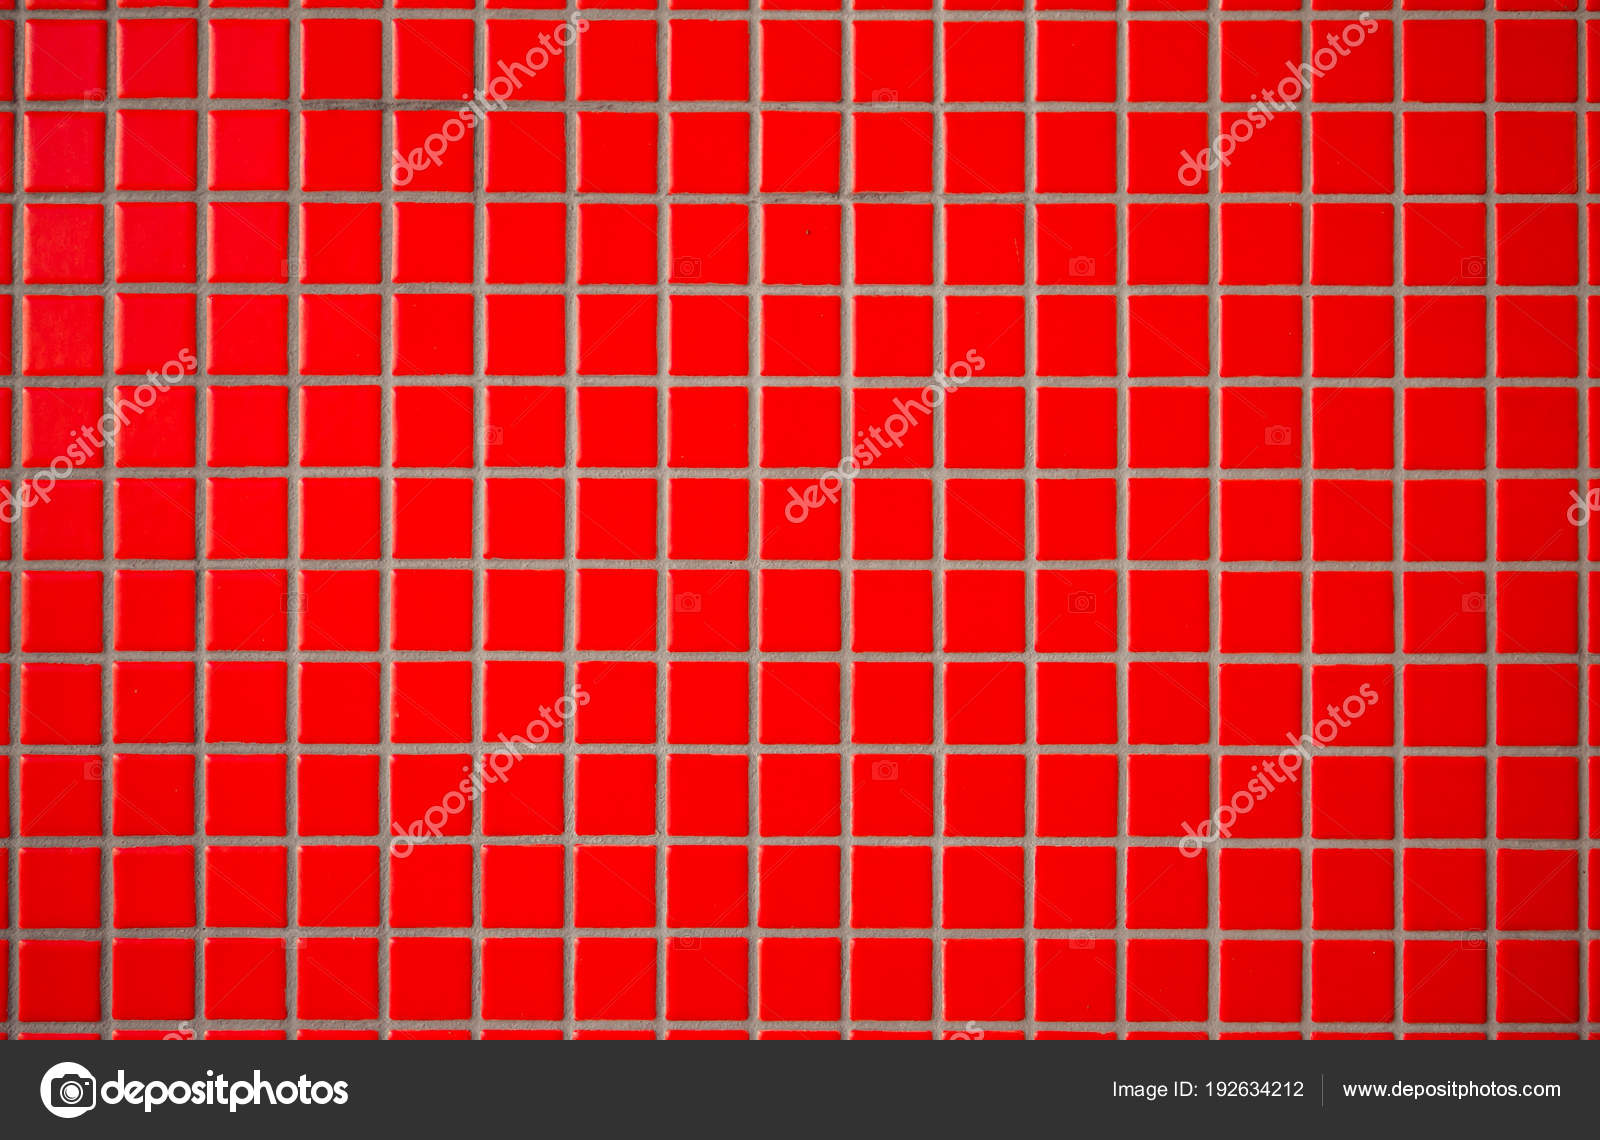 Red Ceramic Tiles With Seams Looks Like A Mosaic Tiles Abstrac Stock Photo C Maximnorby 192634212